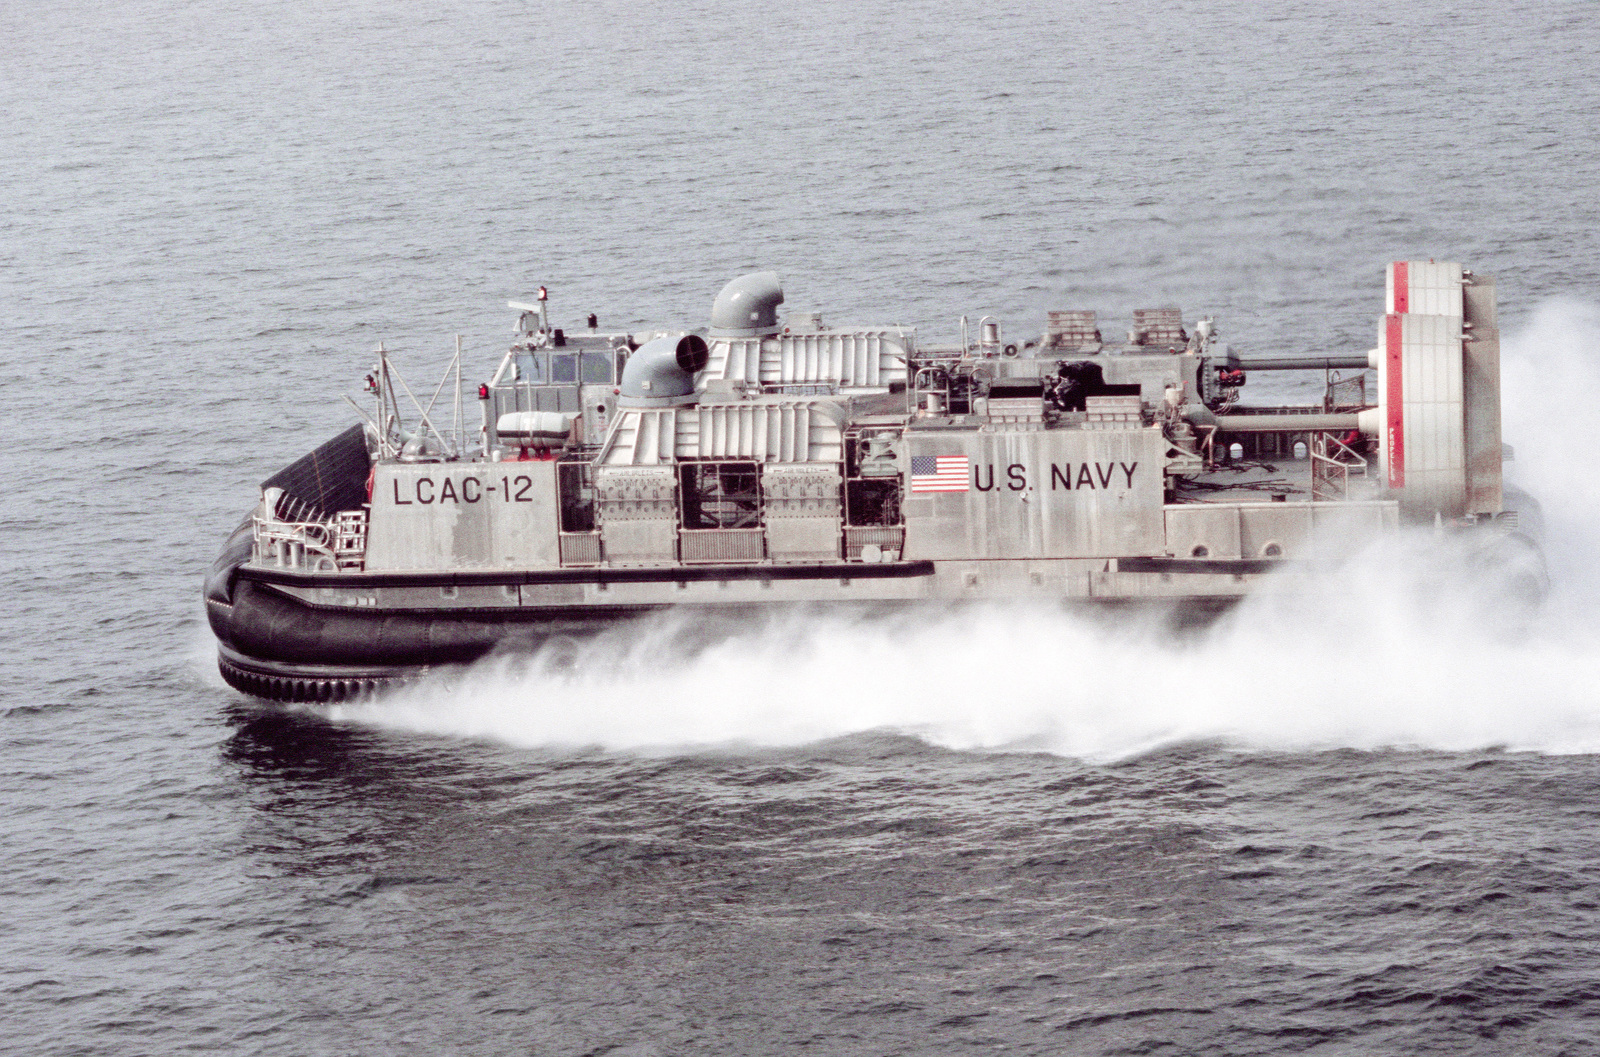 A port side view of air cushion landing craft LCAC 12 underway near Naval Amphibious Base, Little Creek, Virginia.  The landing craft is carrying a Marine M1A1 main battle tank